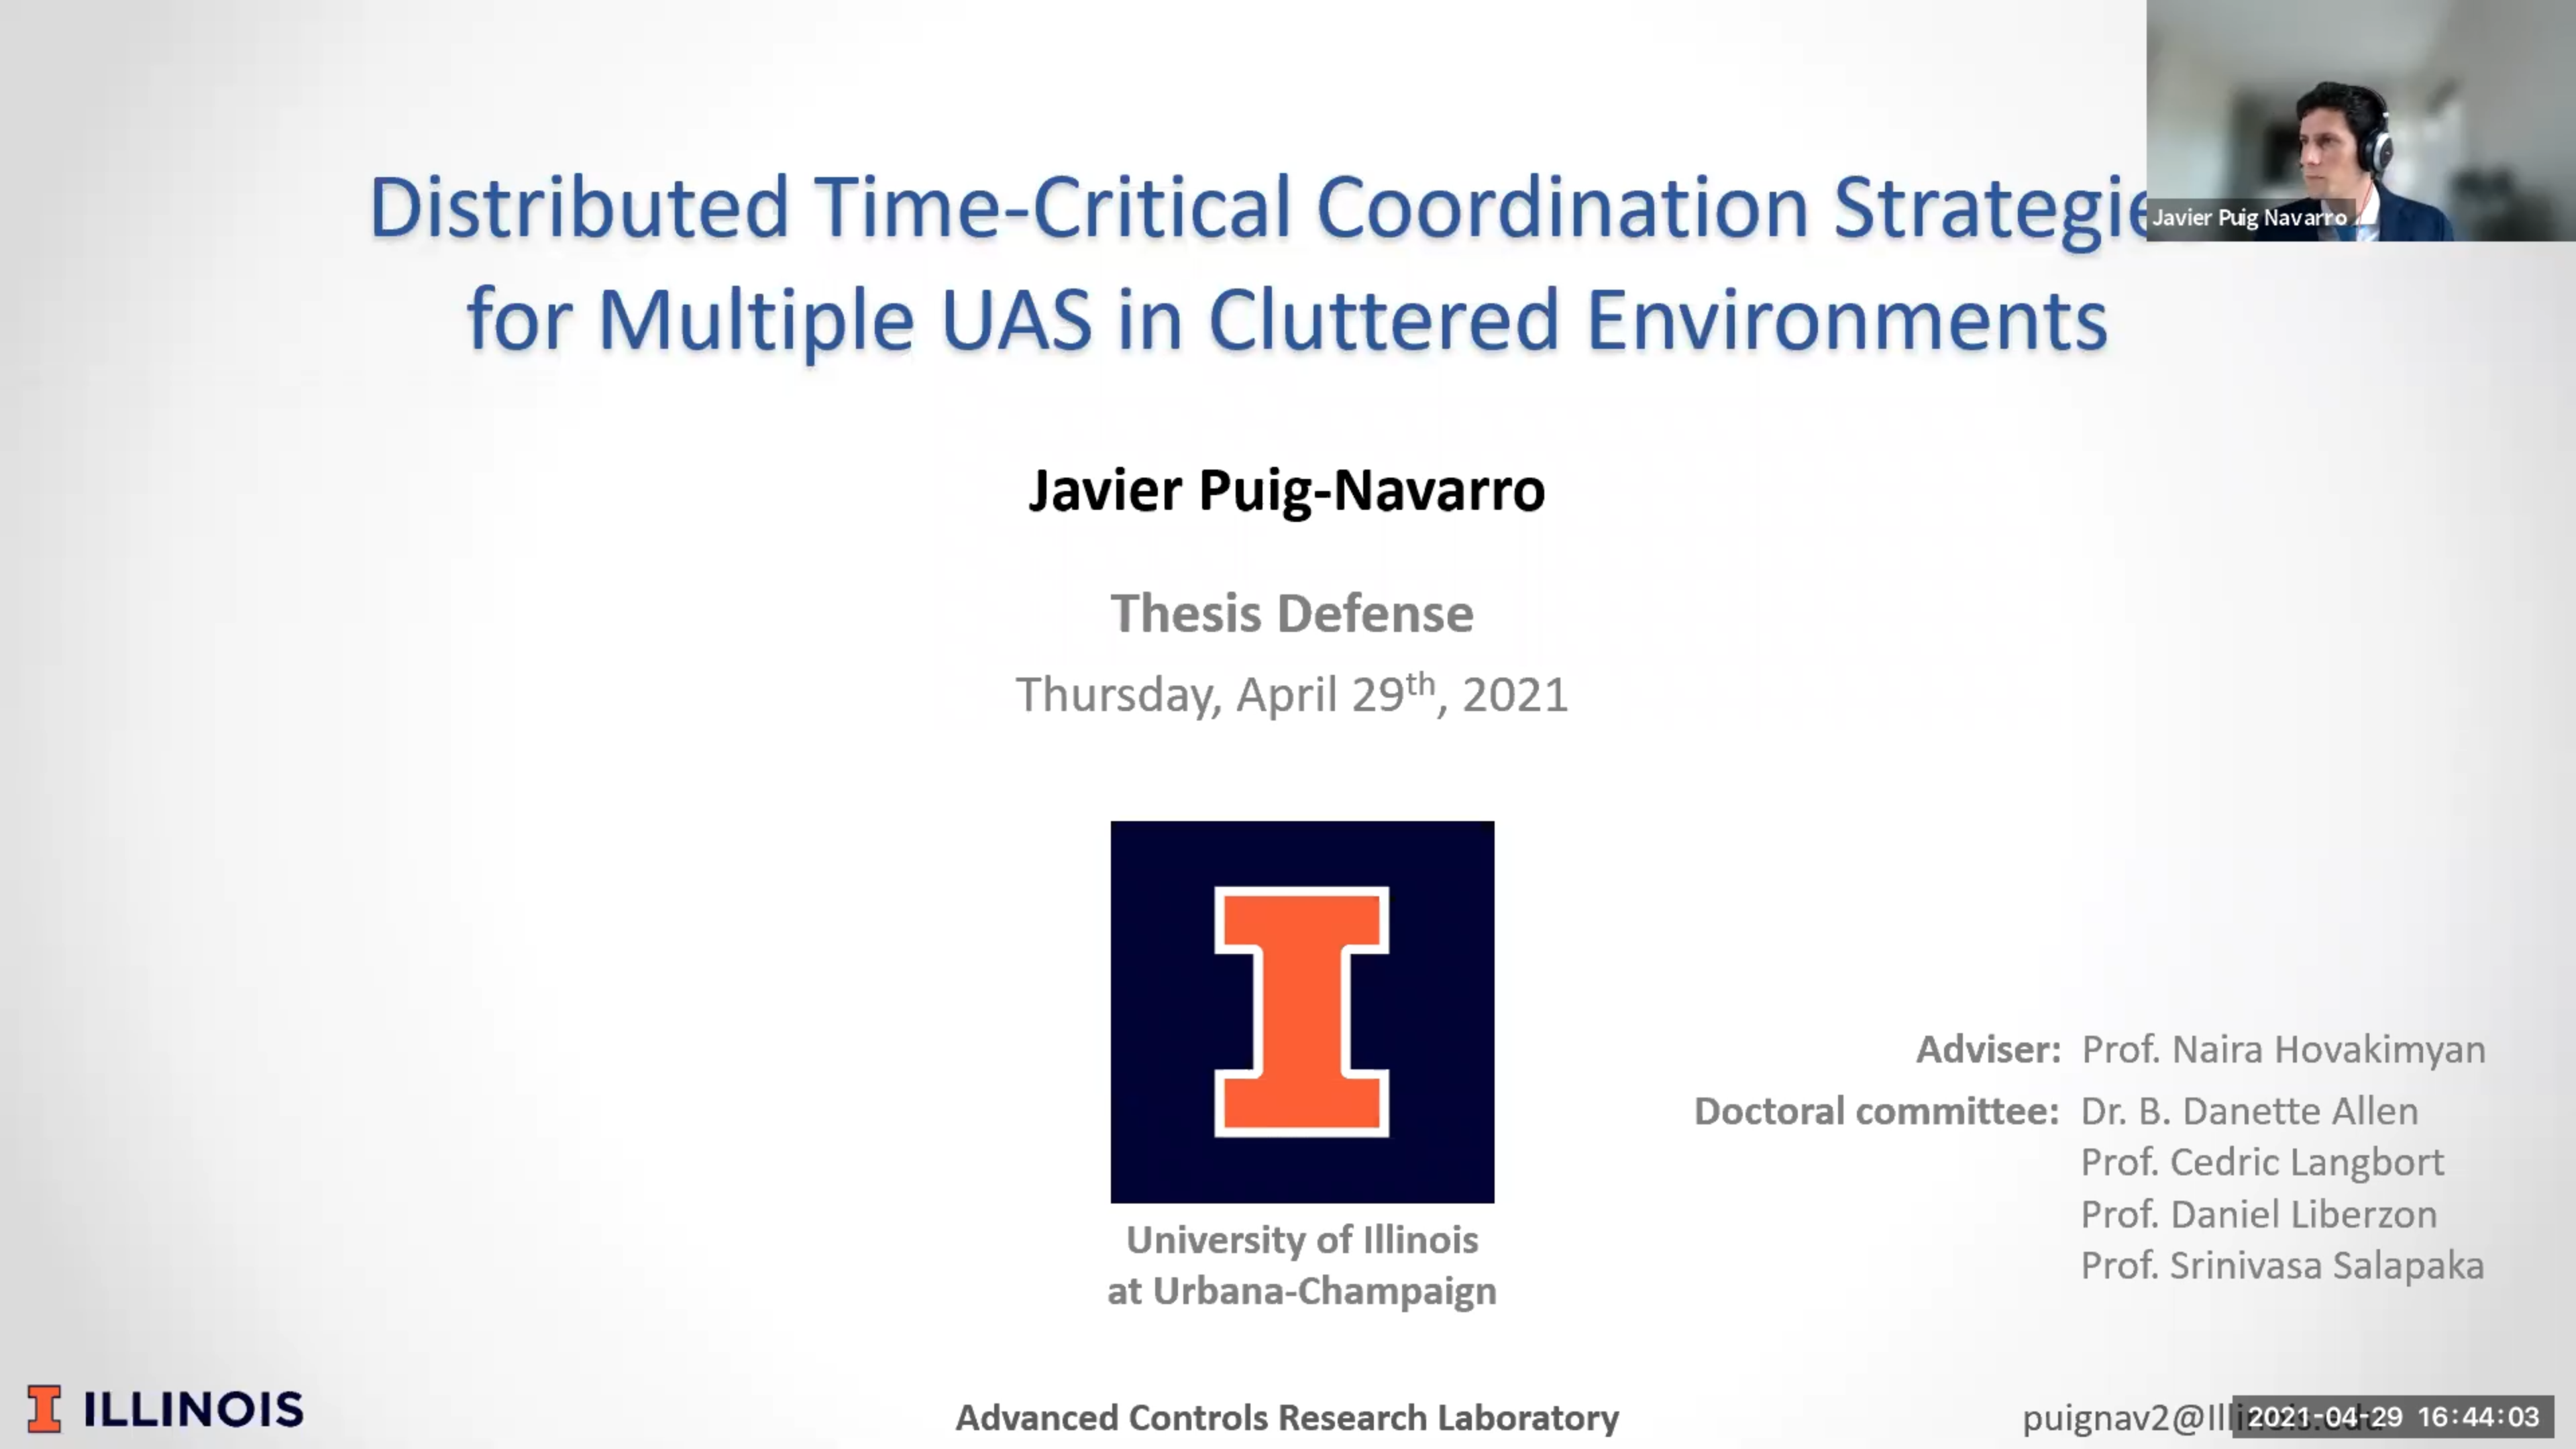 Javier Puig-Navarro defended his thesis successfully!